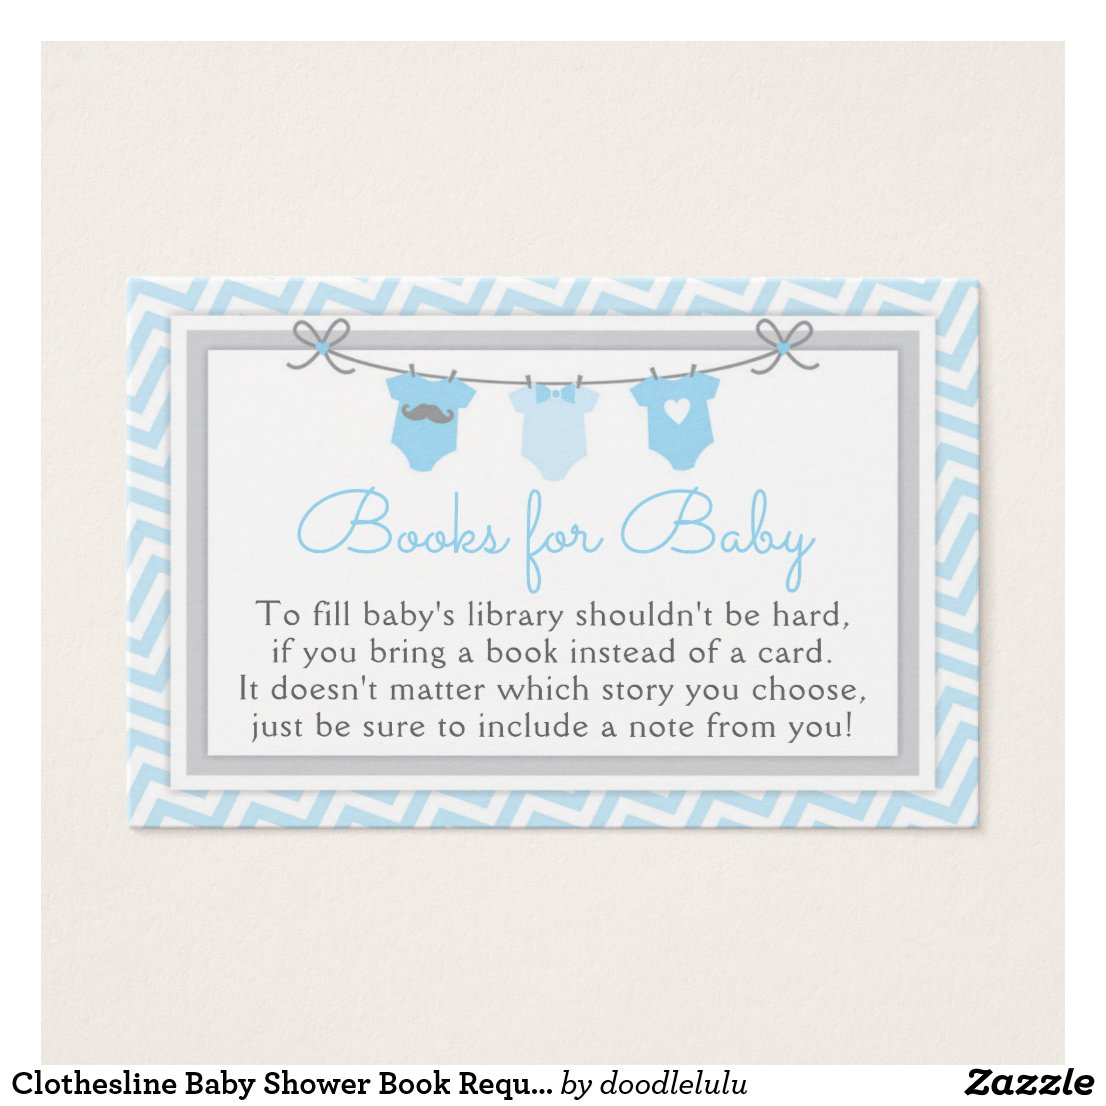 Clothesline Baby Shower Book Request Card blue